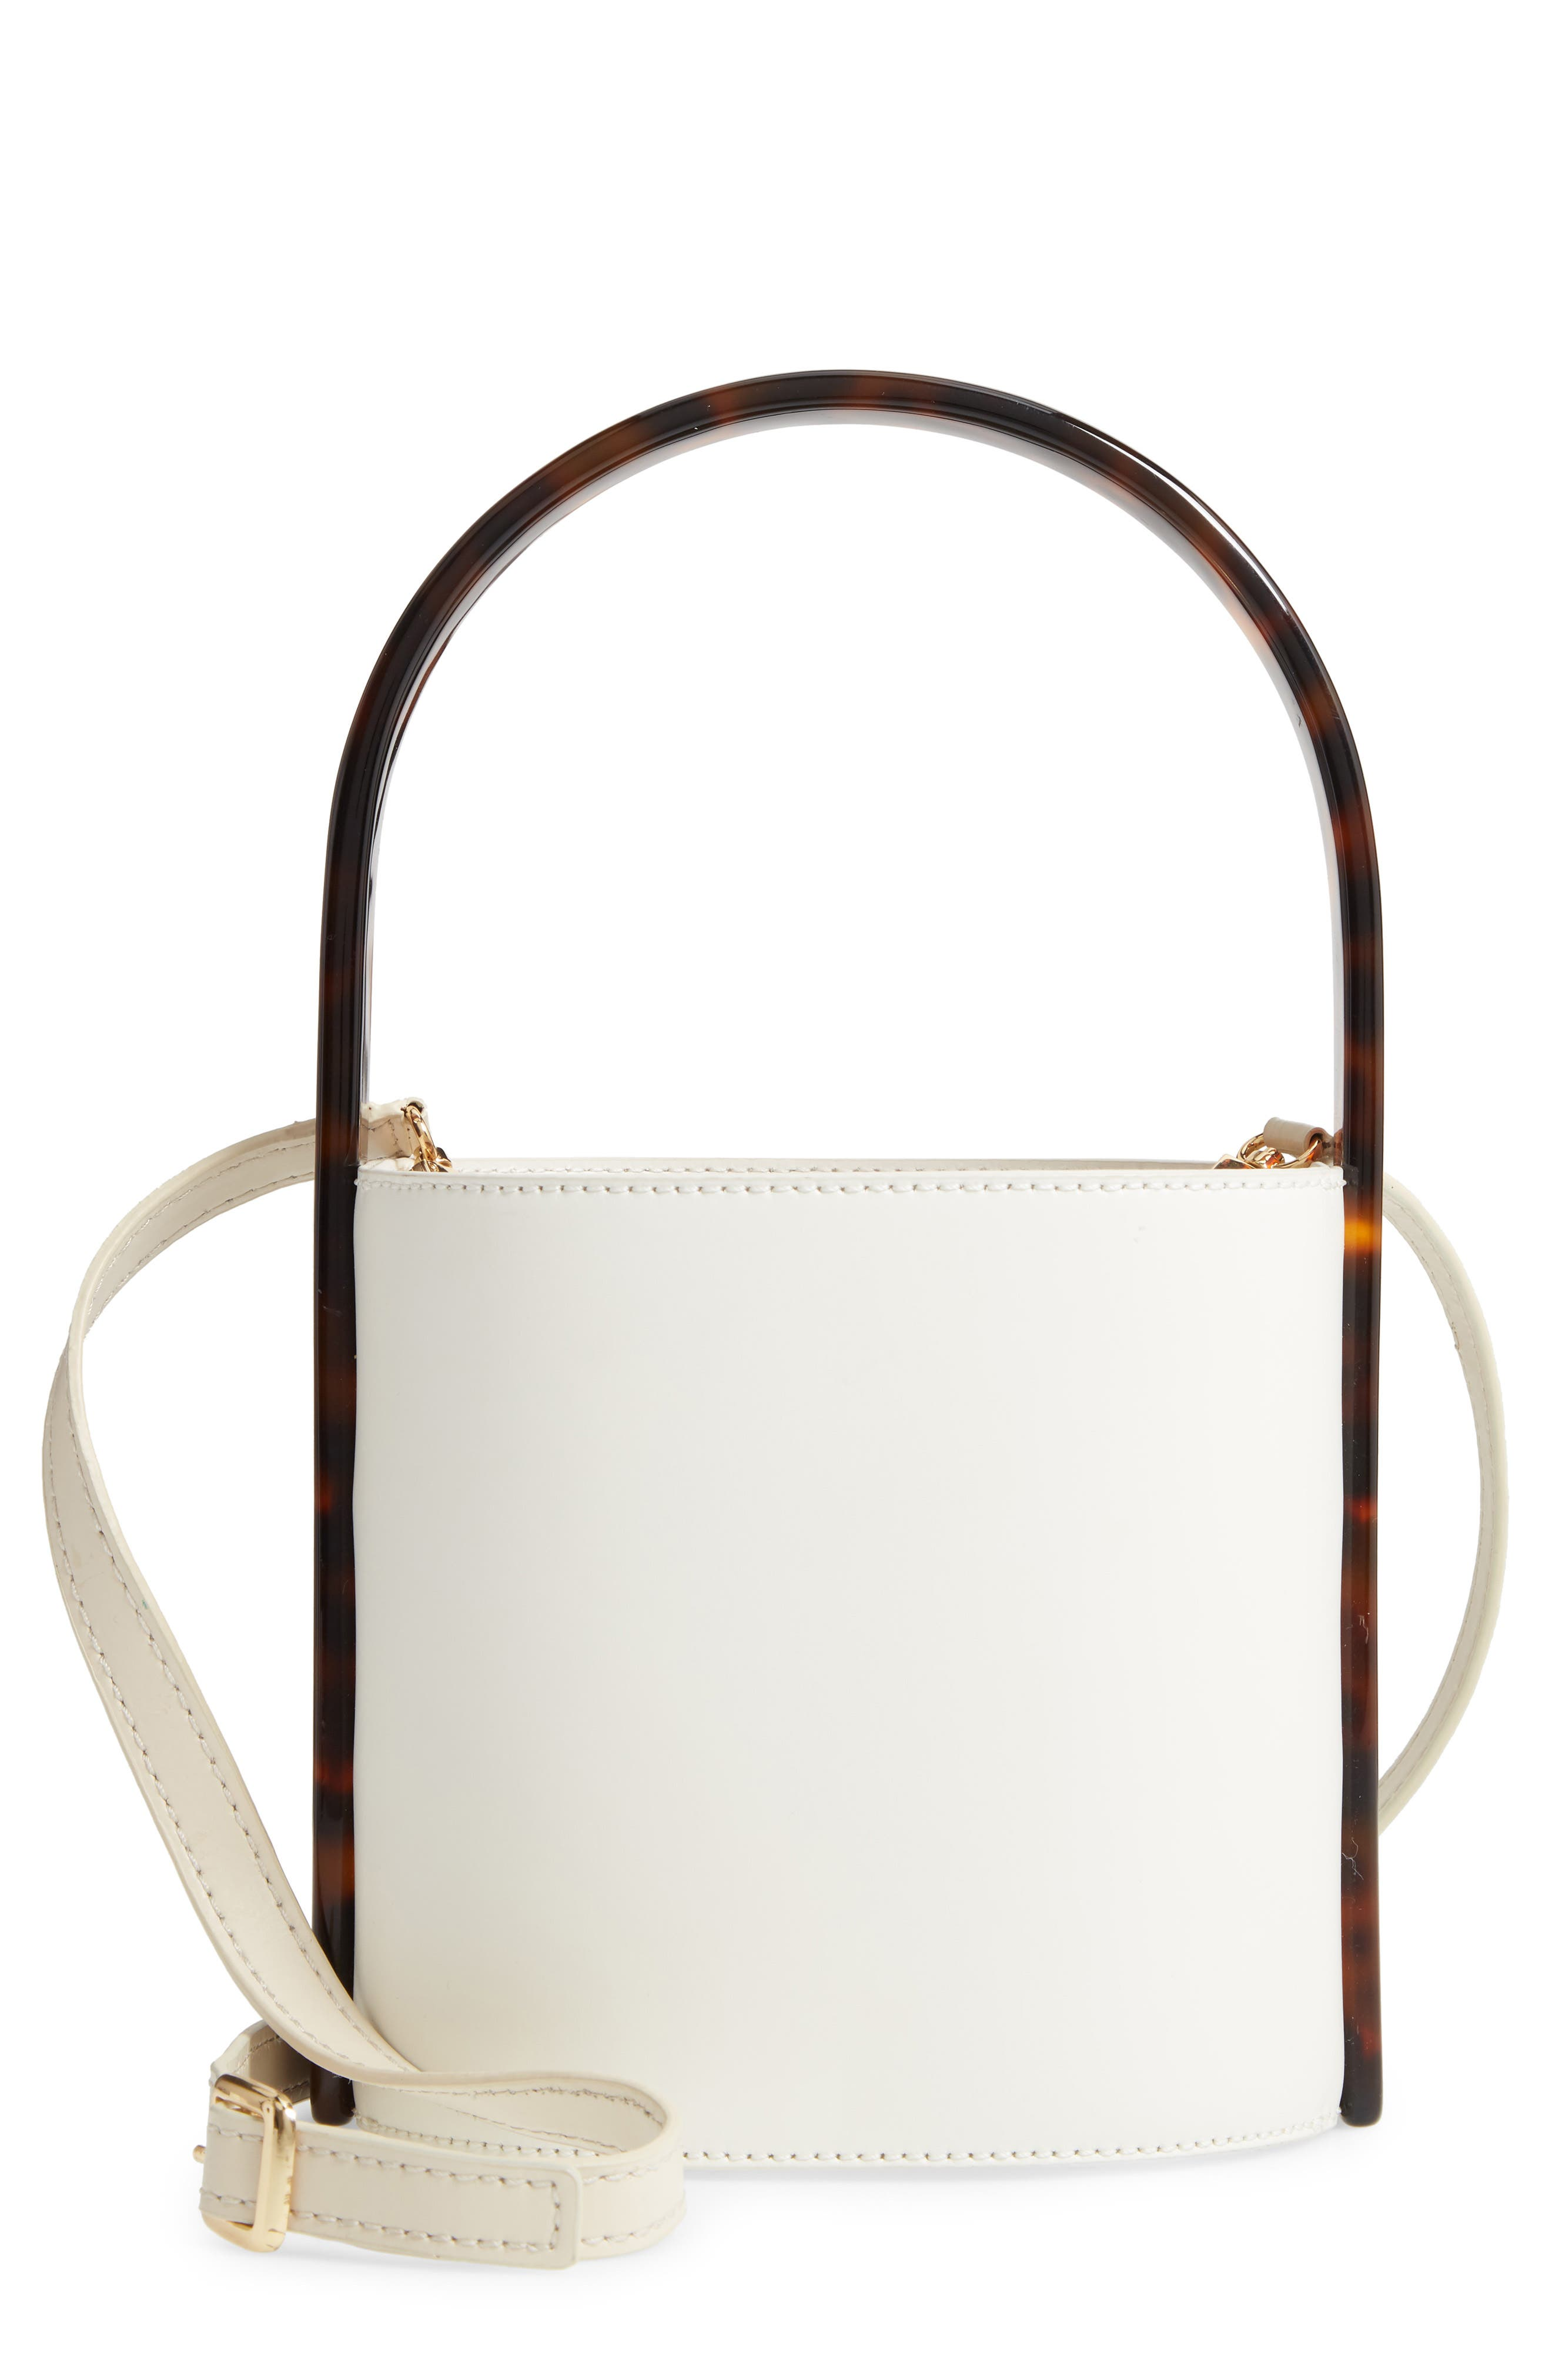 Staud Bags Tortoise Bissett Leather Bucket Bag